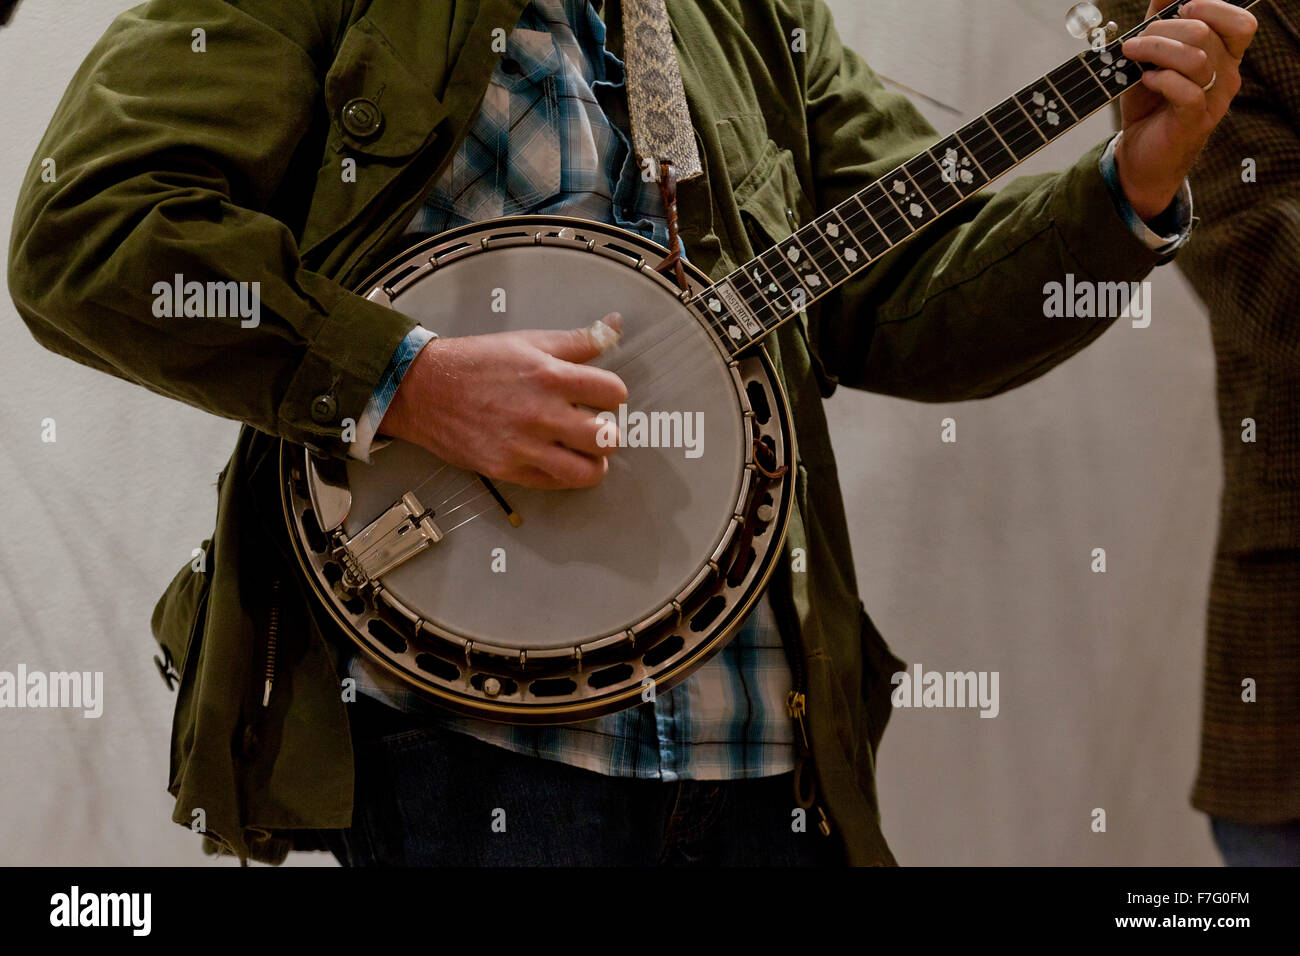 Banjo player - USA - Stock Image